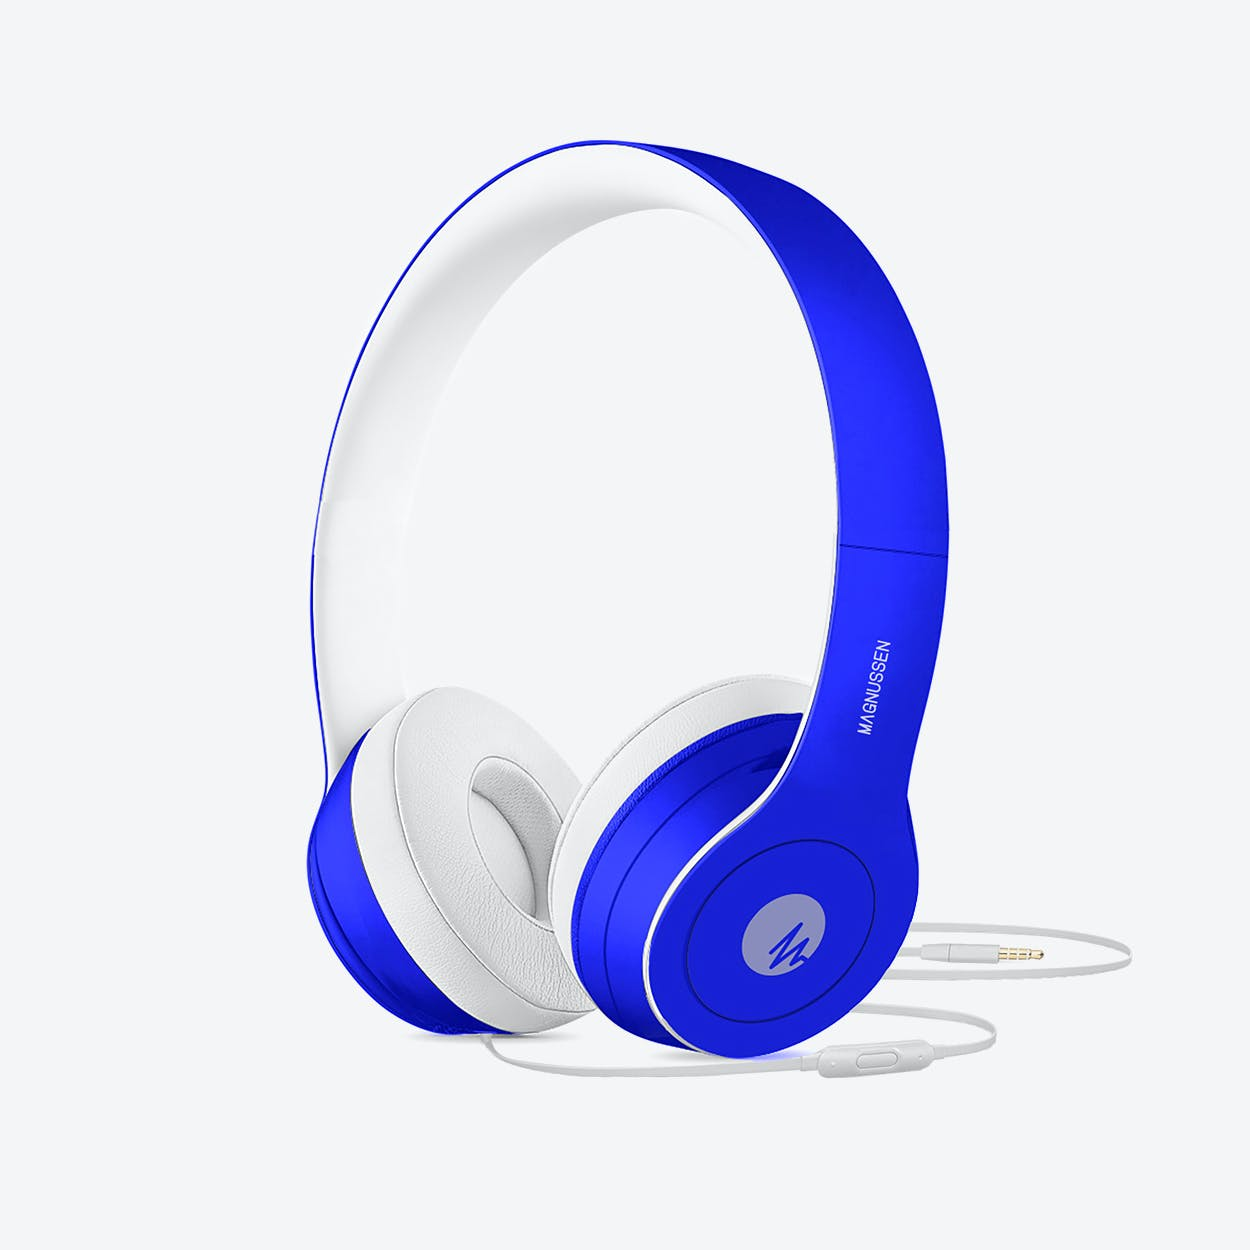 MAGNUSSEN W1 Headphones in Gloss Blue